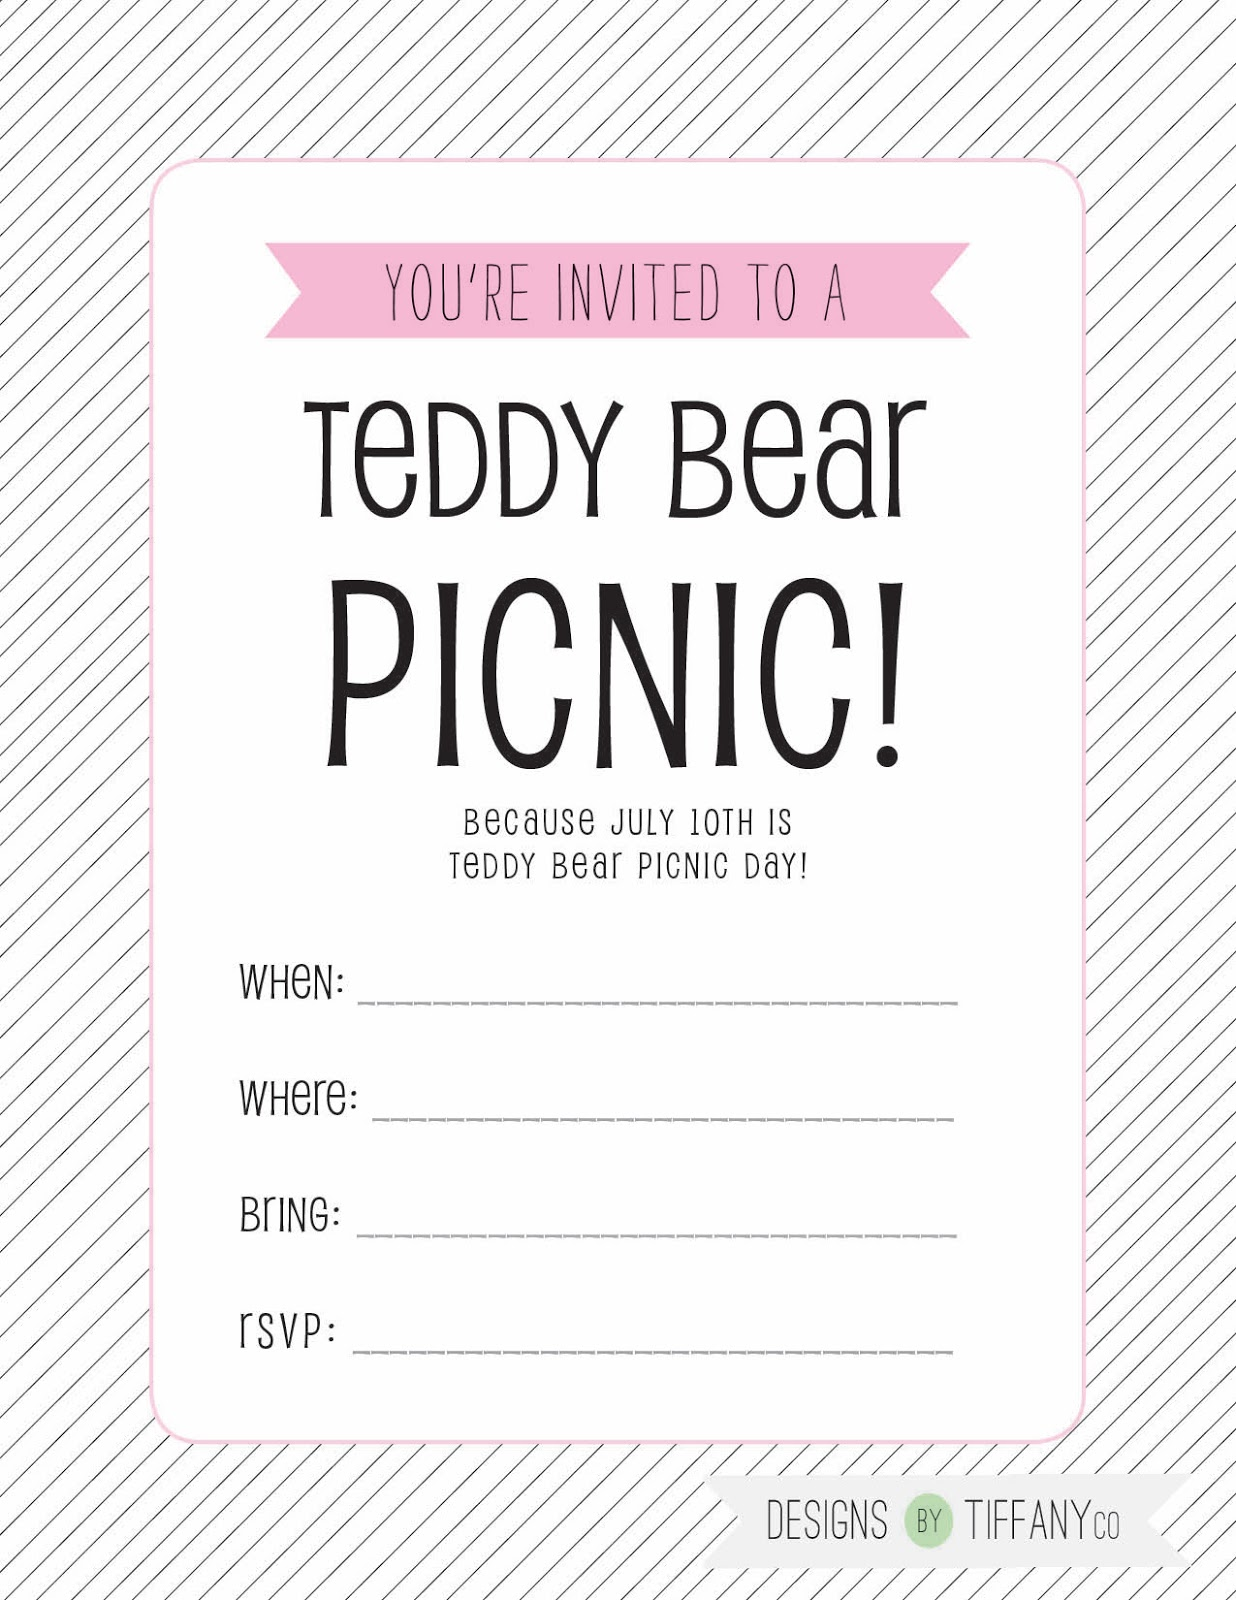 Free Printable July 10th is Teddy Bear Picnic Day Designs by – Teddy Bears Picnic Party Invitations